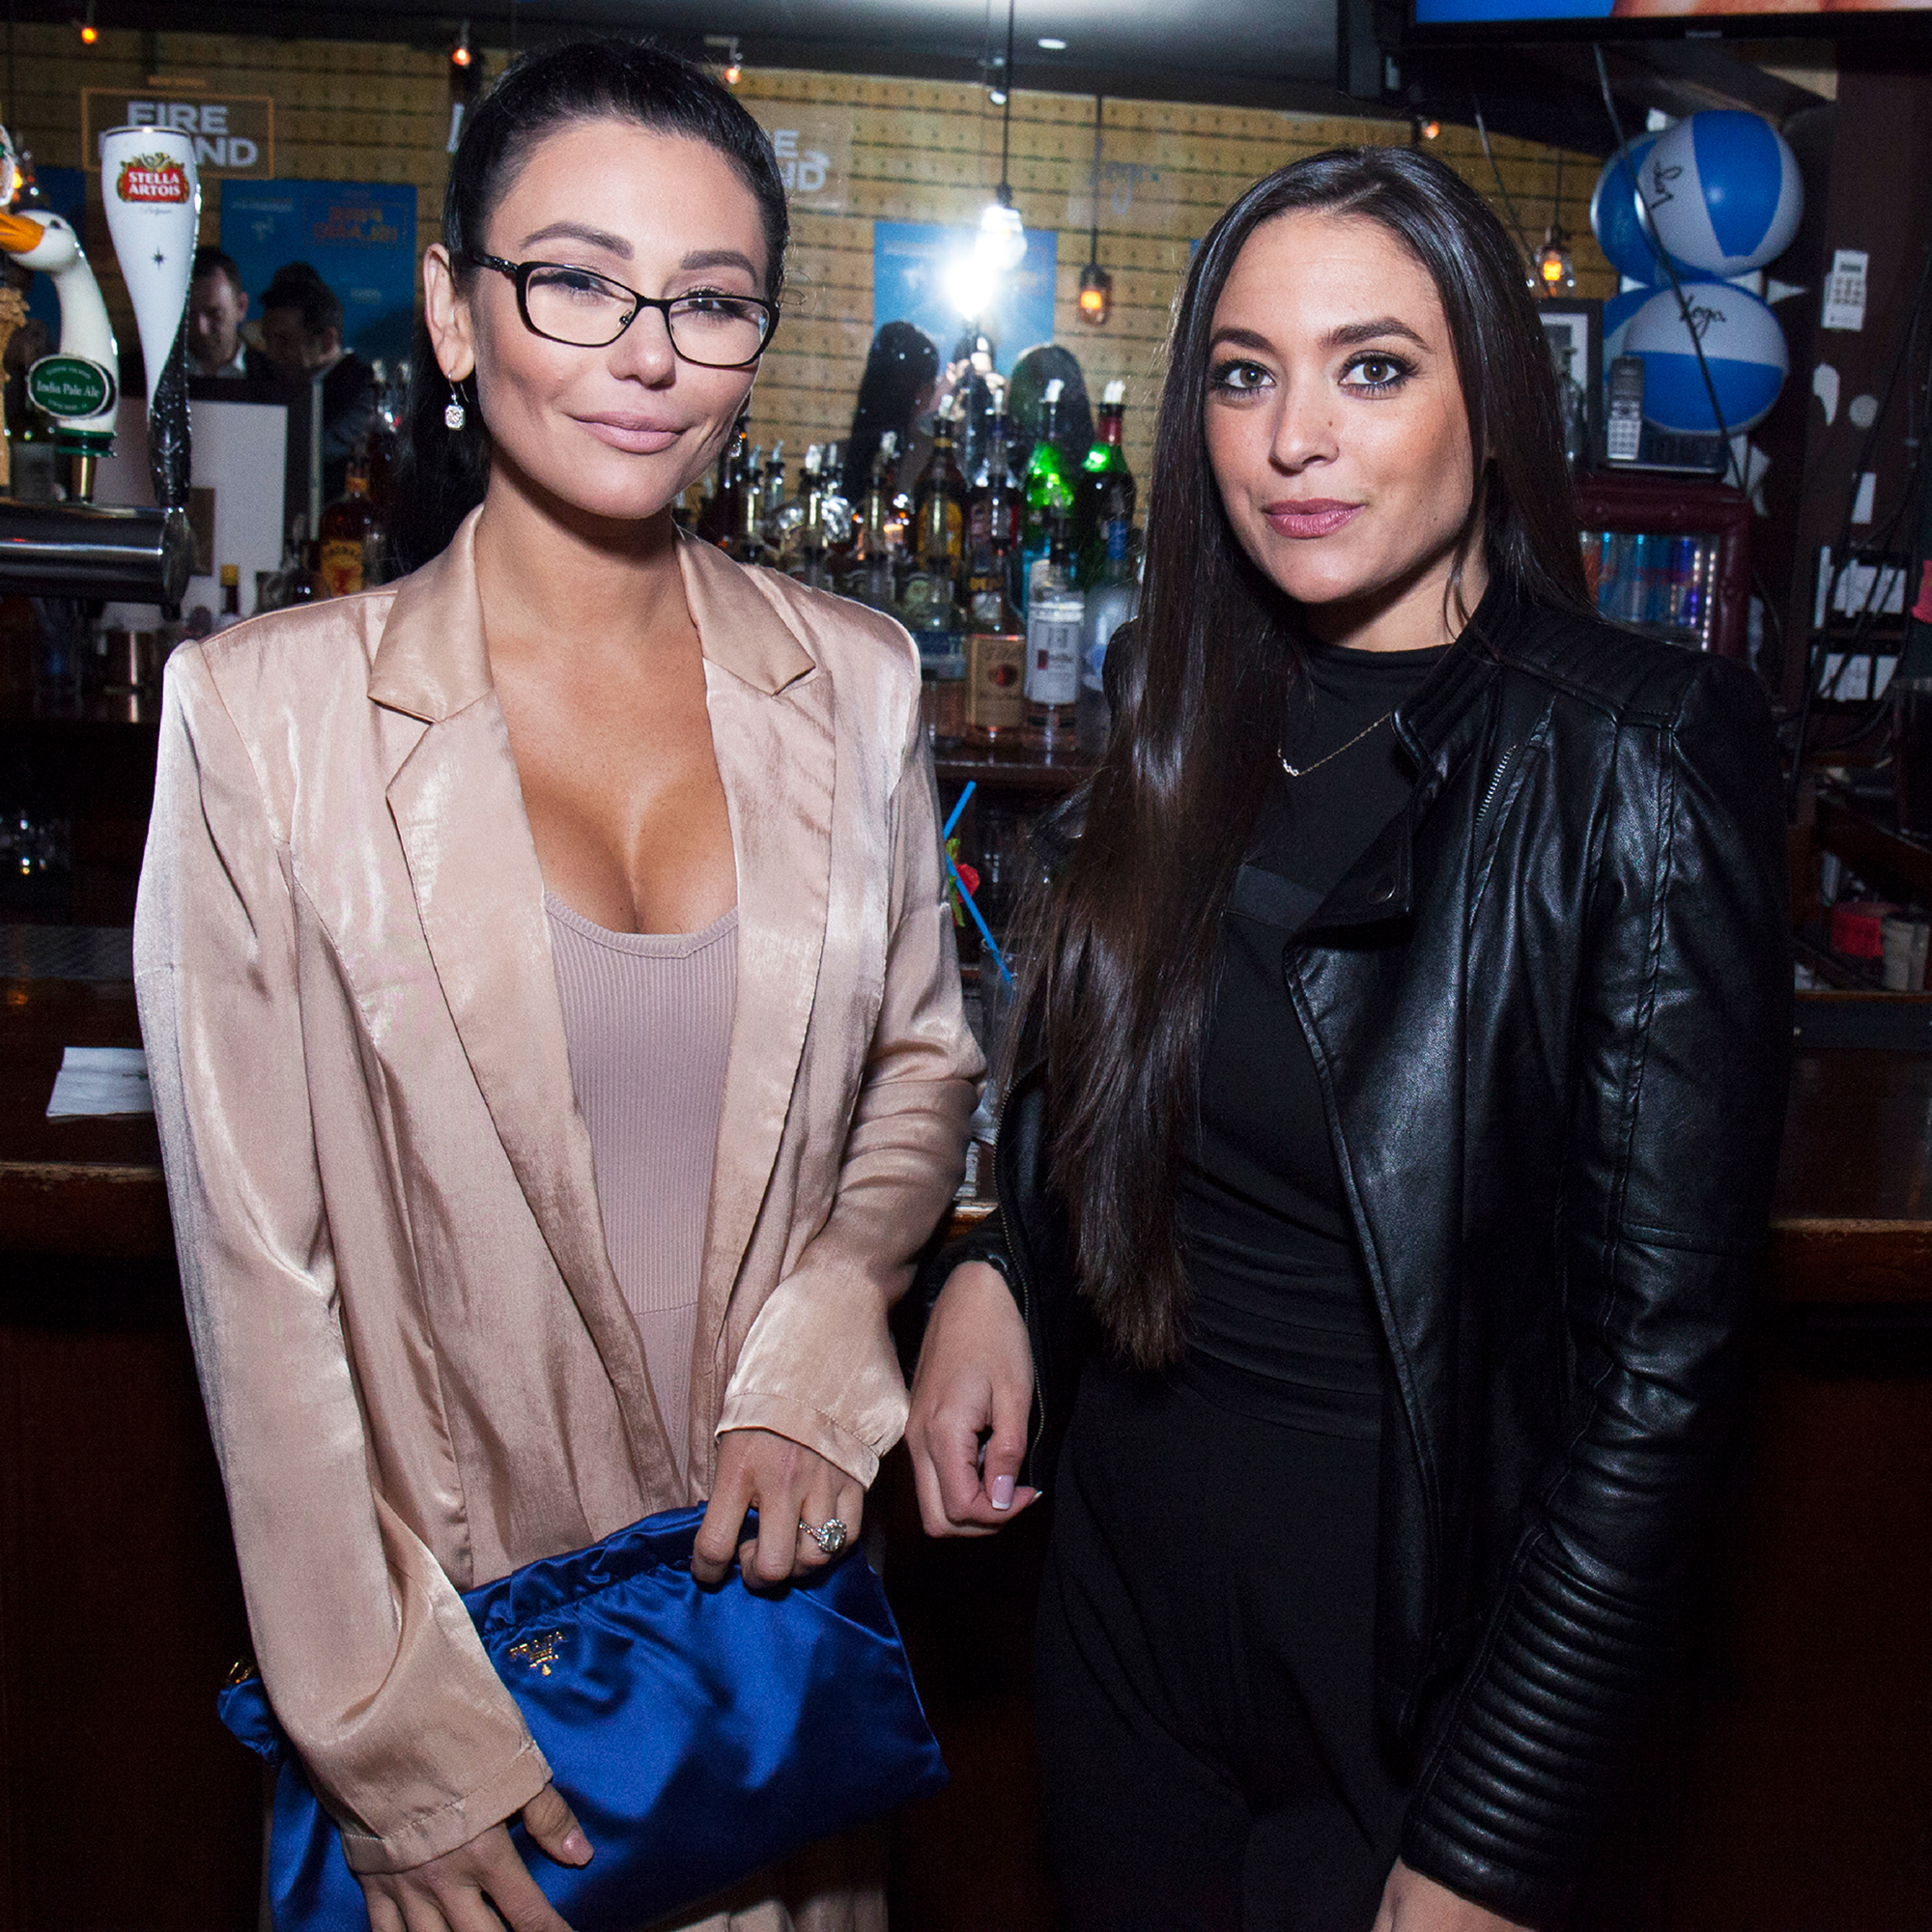 """Snooki, JWoww and the 'Jersey Shore' Cast Shower Sammi 'Sweetheart' Giancola With Love After Engagement - Farley, who is going through a nasty divorce from estranged husband Roger Mathews , wrote, """"Omg omg omg !!!! I'm so freaking happy for you."""""""